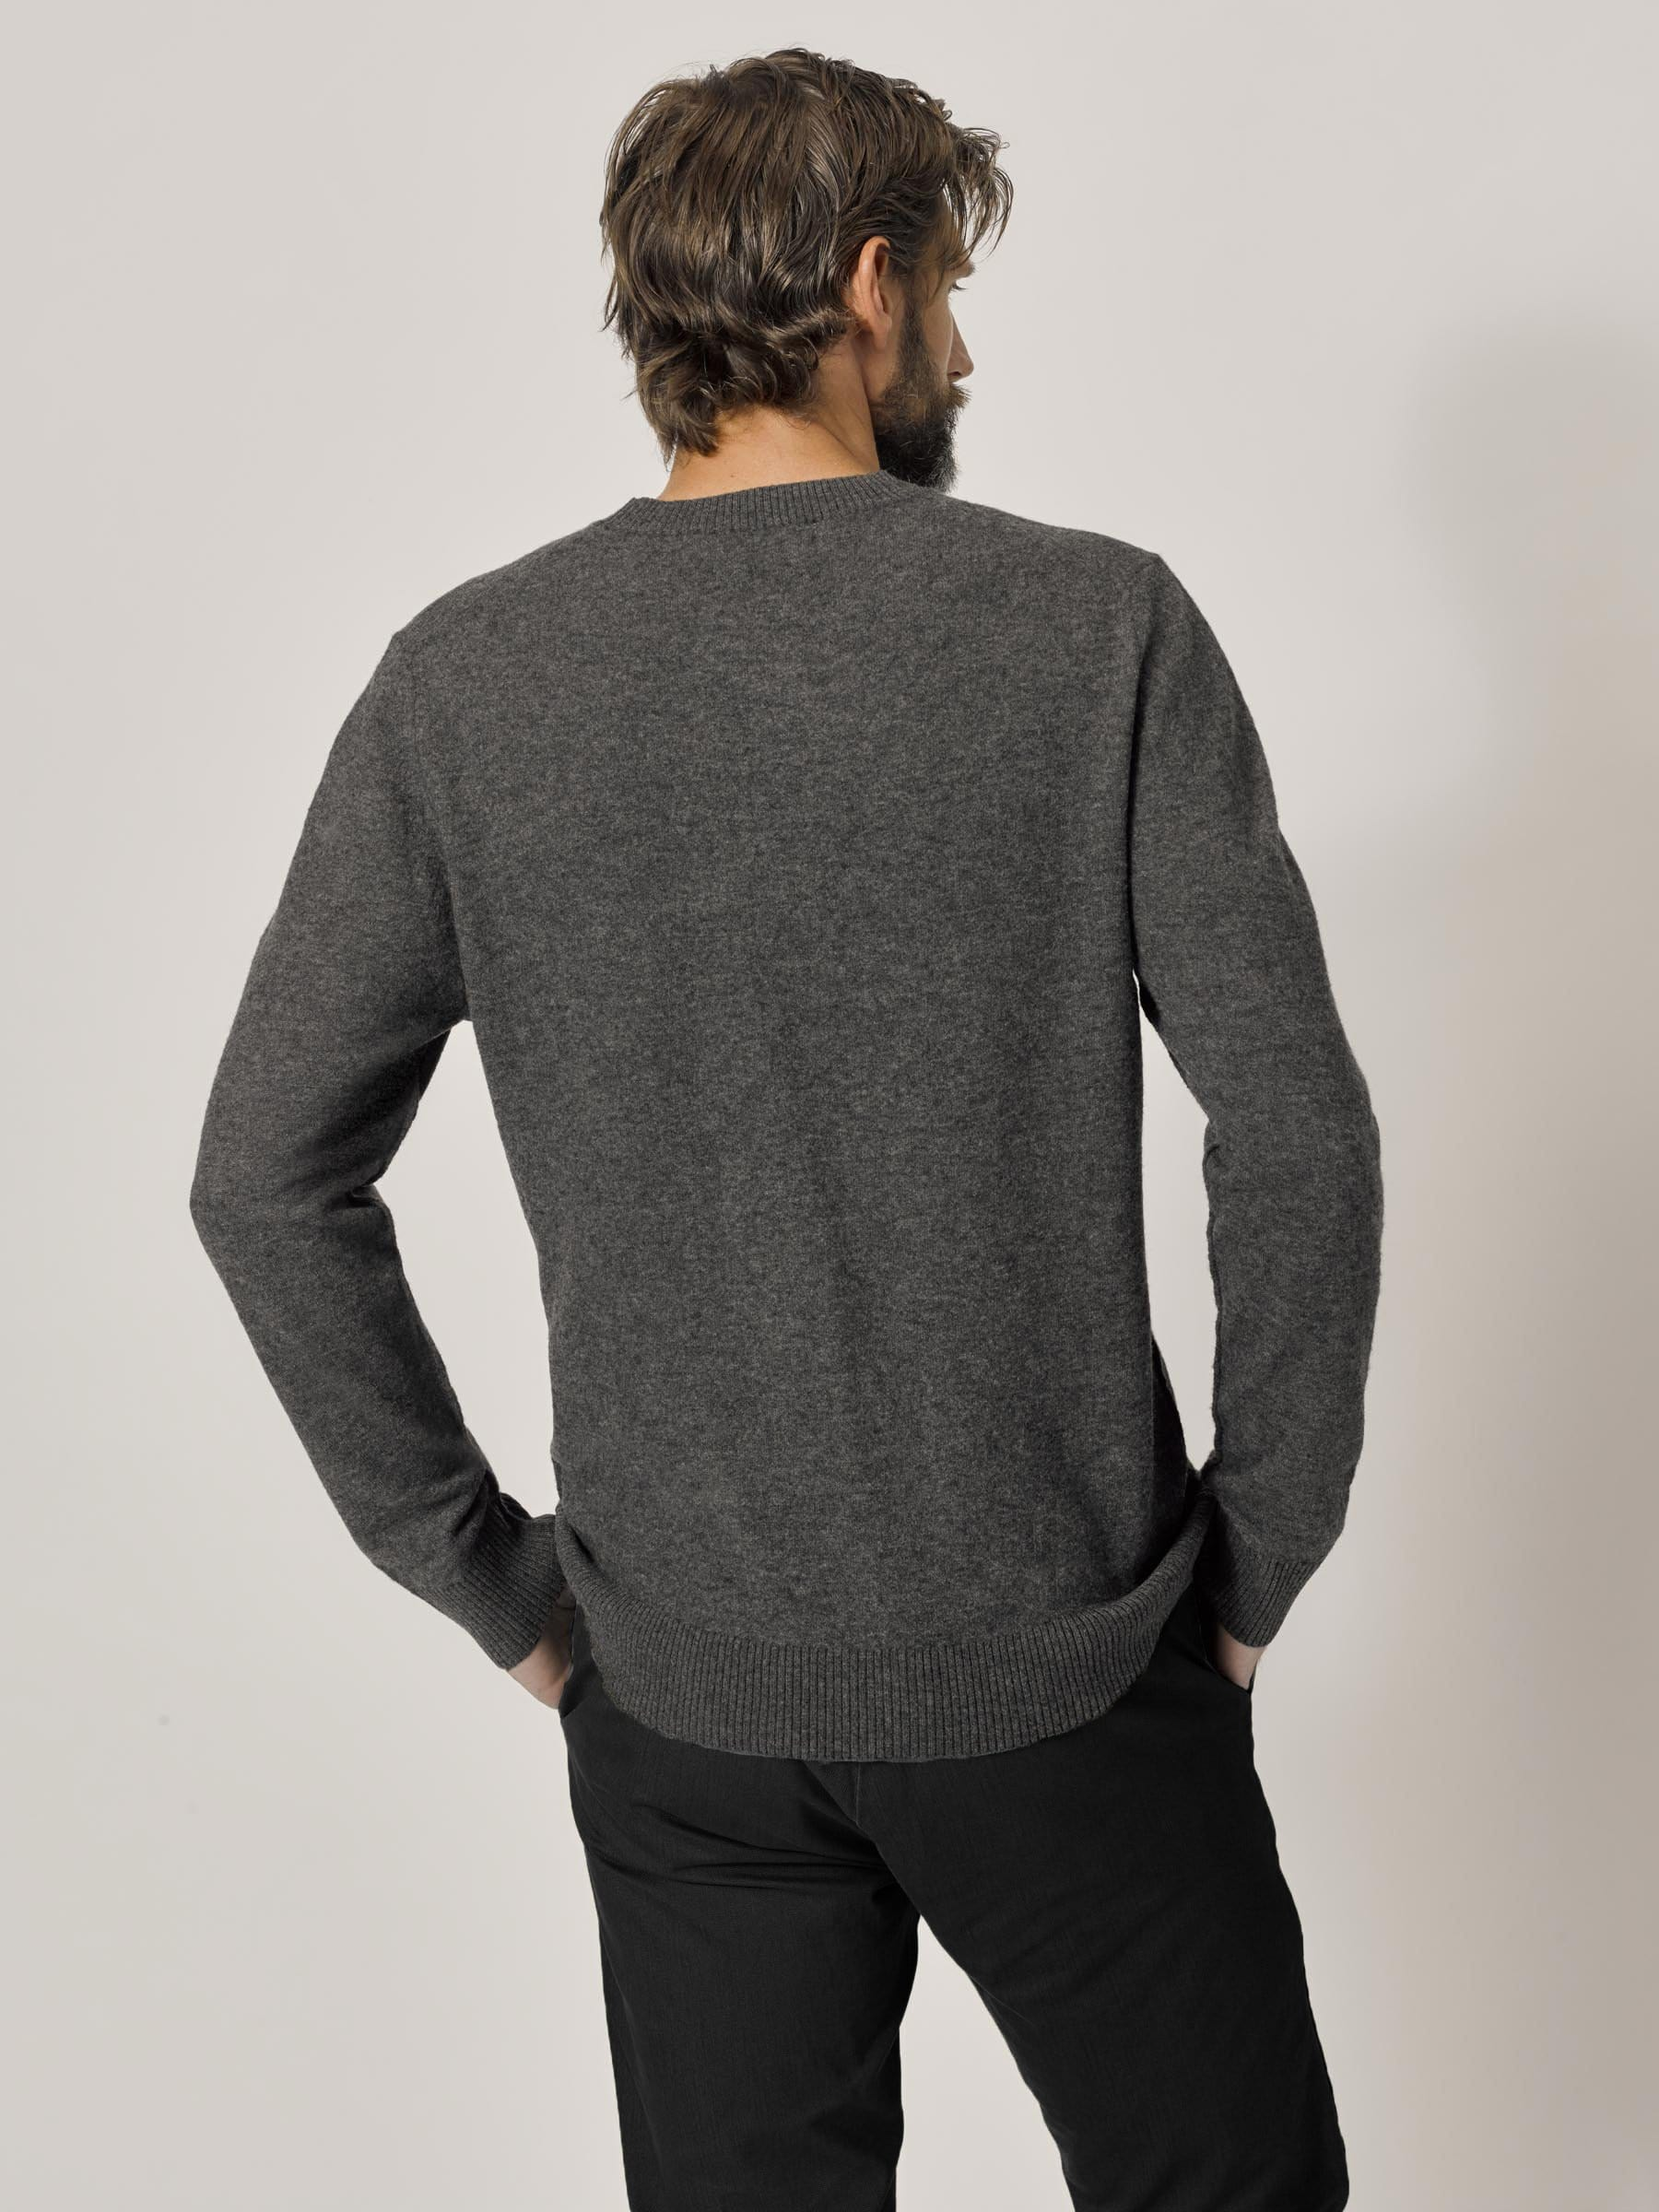 Buck Mason - Anchor Felted Fine Gauge Classic Crew Sweater